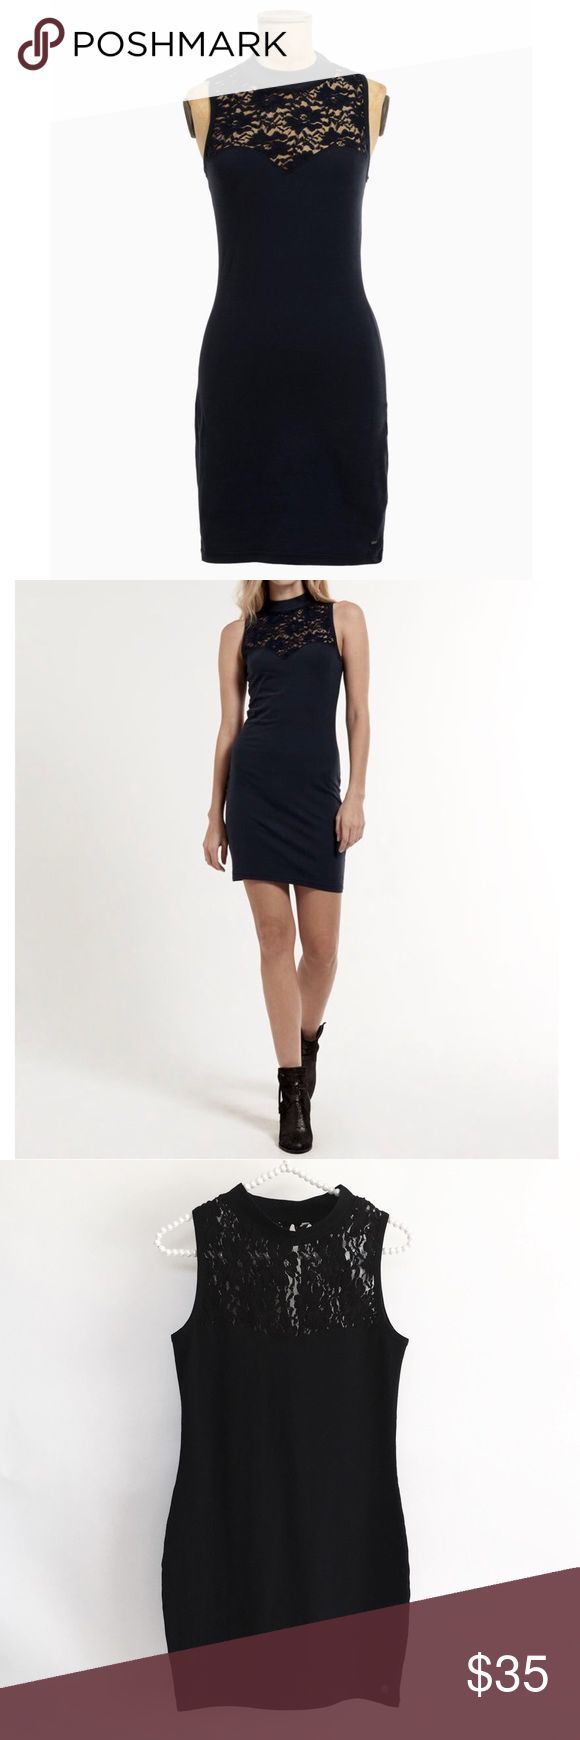 """💥FINAL💥 Superdry LBD Superdry Bodycon Dress.   A sleeveless bodycon dress with a sweetheart bustline featuring a delicate embroidered lace panel across the top of the dress and a keyhole back.  Finished with a Superdry metal logo badge above the hem.  Size is listed as """"One size"""" but definitely meant for XS/S Superdry Dresses"""